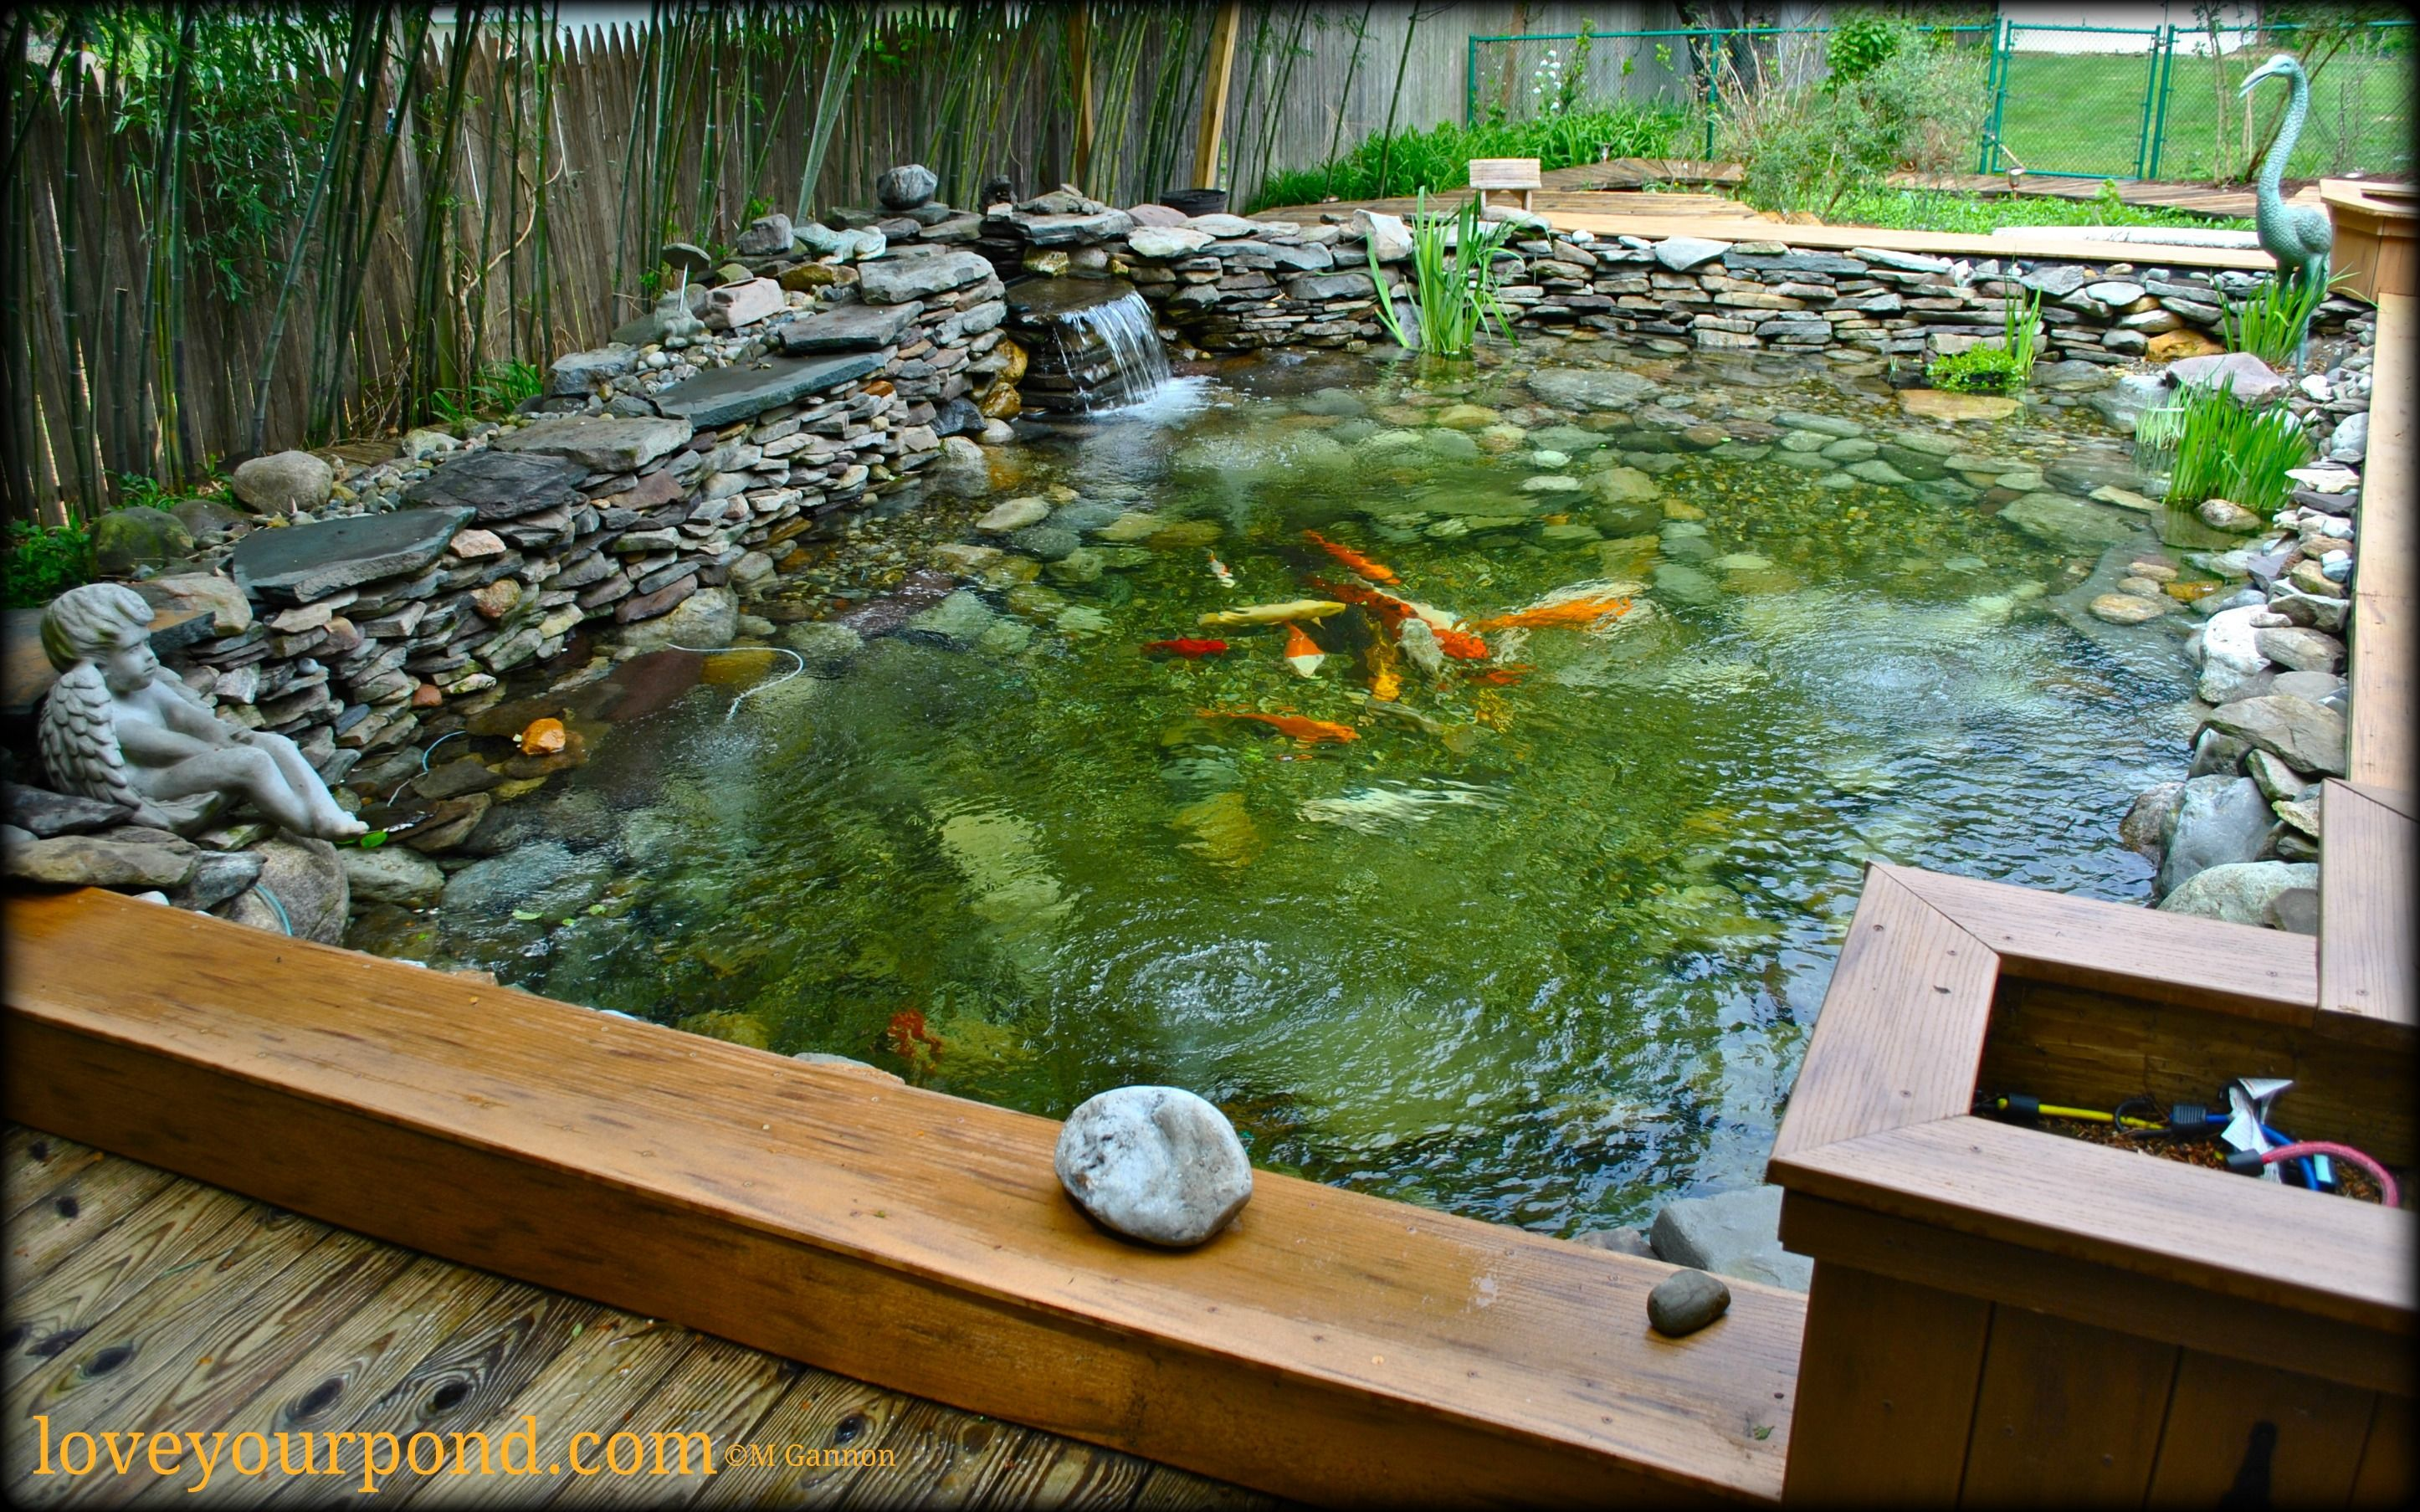 Semi above ground koi pond installation deisgned and for In ground koi pond